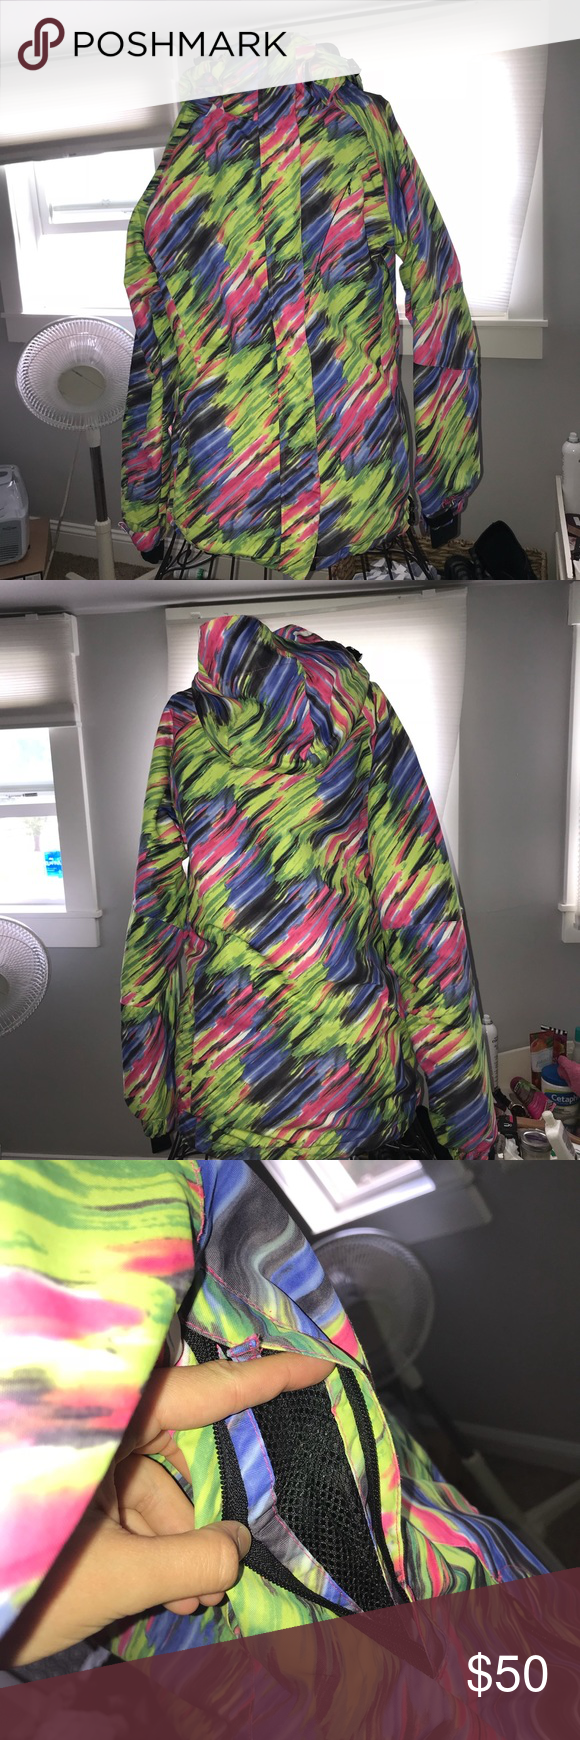 Women's Pulse Winter Coat Grey,Green/Yellow,pink,blue, white colorful winter coat! Very warm and great for snowboarding/skiing. Or just cold weather! Cozy and not too thick. Worn just a couple times. Also with airflowable zippered armpits pulse Jackets & Coats